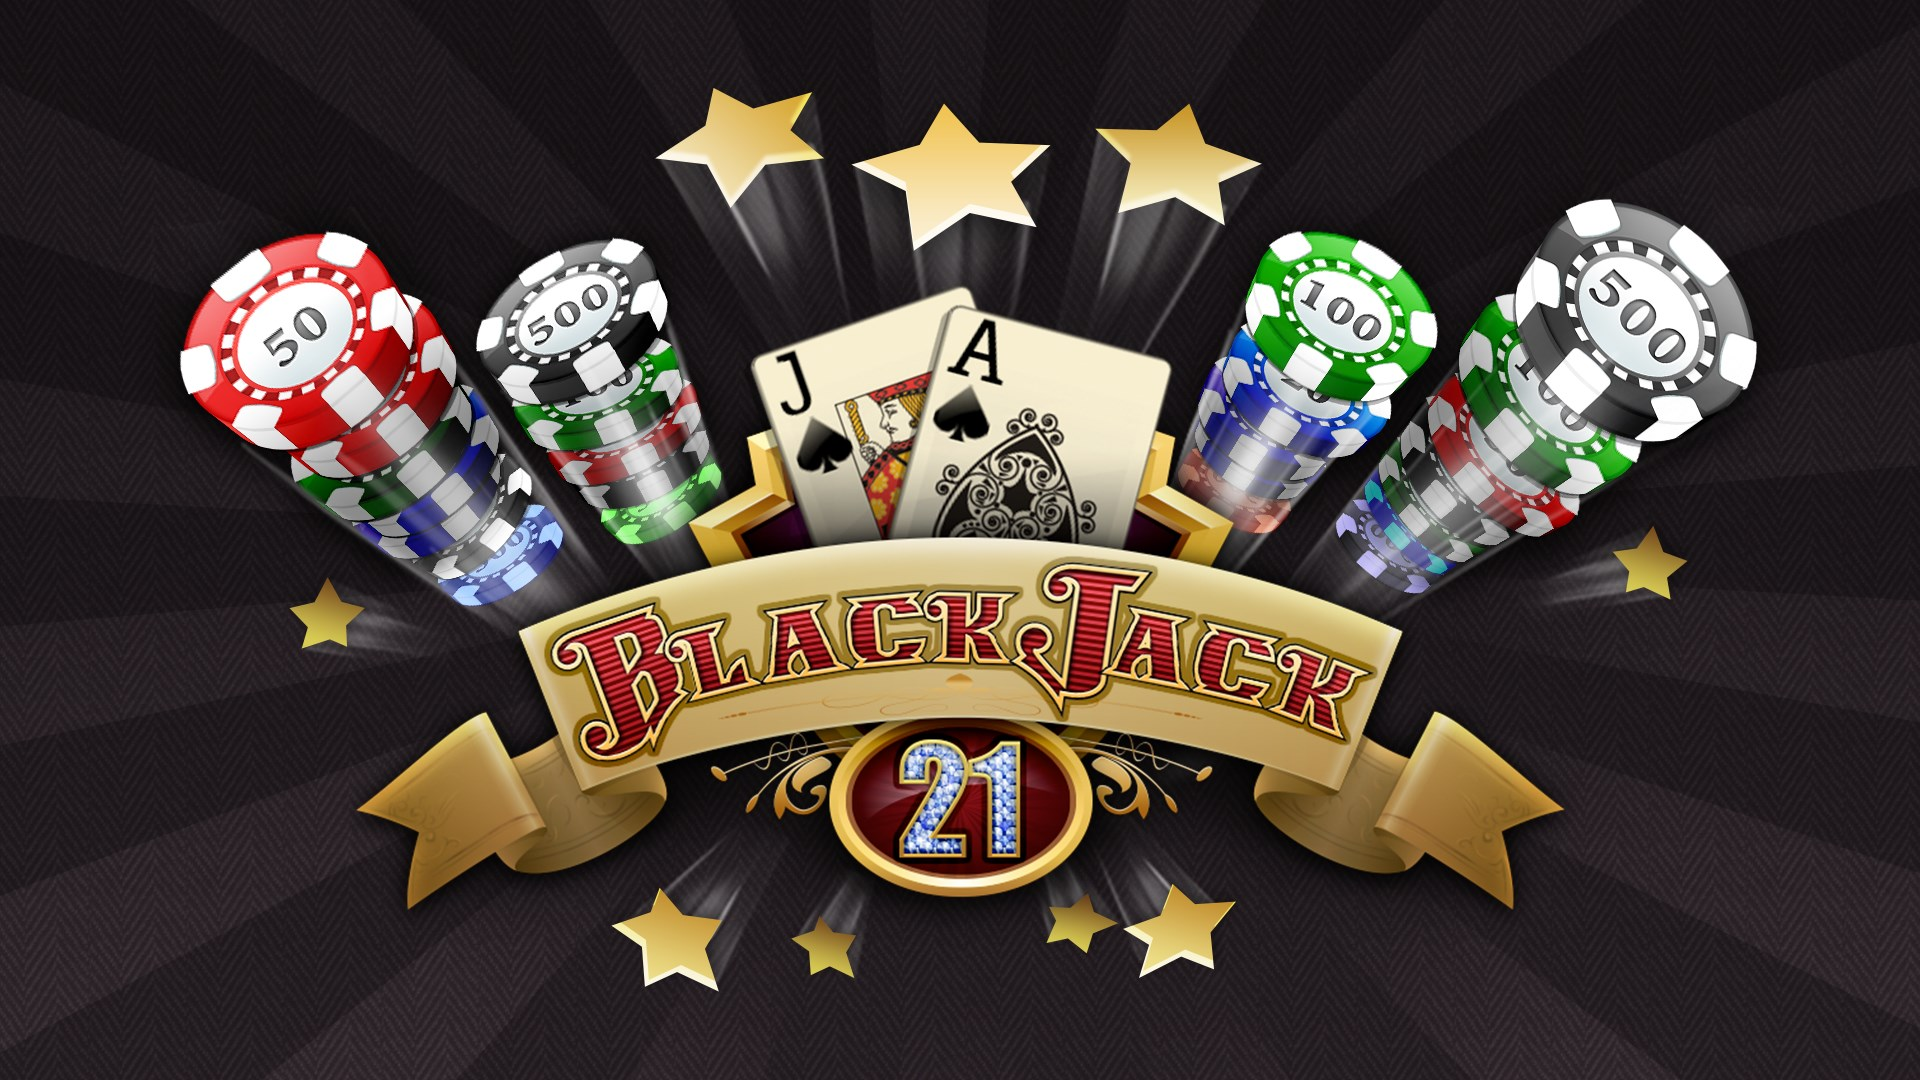 The best tricks to win at blackjack